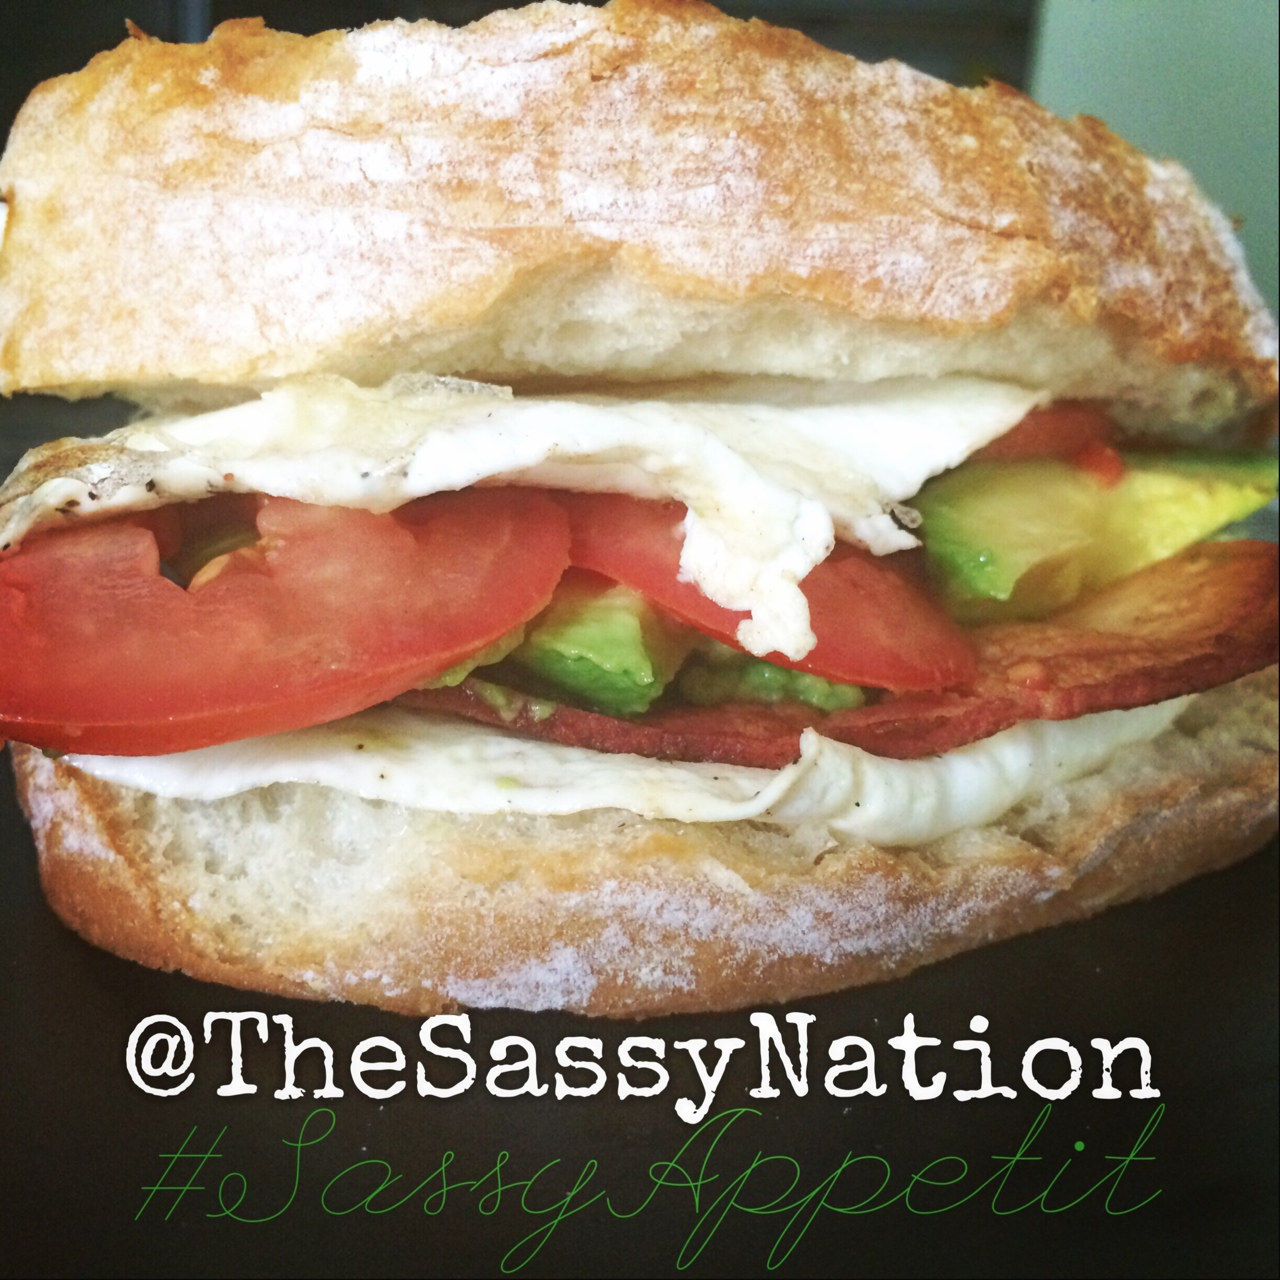 ::: Sassy Appétit :::    So… this happened this morning. 😋#Eggwhites with #spinach, Roma #tomato, #avocado & pepper jack #cheese on toasted #ciabatta bread   *and some veggie bacon for good measure. I call it 'California Dreamin.' 😍🌞   Contact us to schedule a #delivery to an #Atlanta neighborhood near you. SassyNation@gmail.com 404-939-0111. 🍳🚗💨